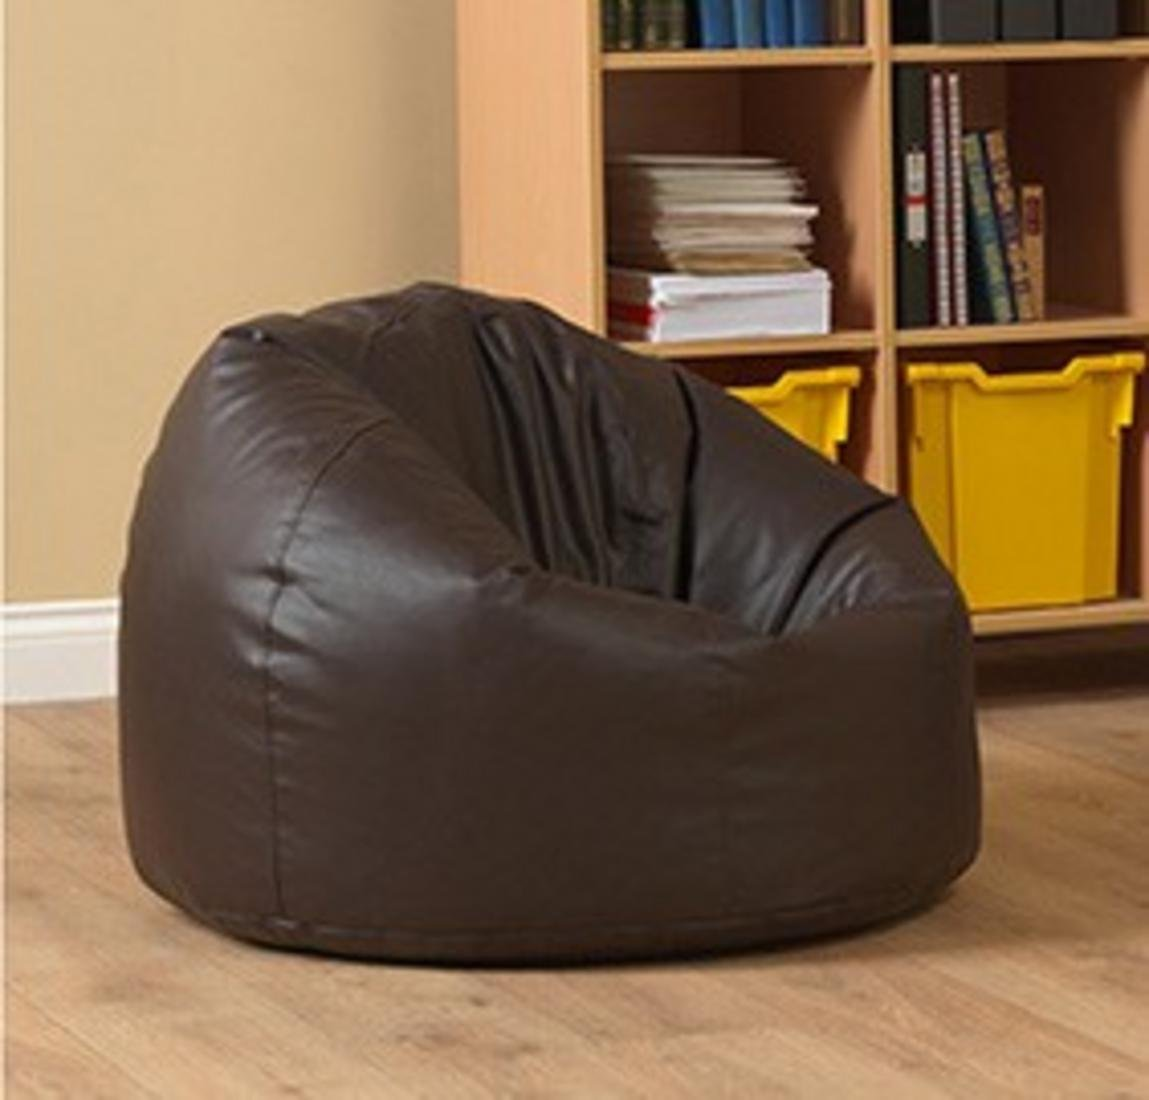 Sensational Ink Craft Xxxl Retro Classic Extra Large Bean Bag Dark Chocolate Brown Chair Without Bean Filling Suitable For Senior And Healthy Person Upto 100Kg Machost Co Dining Chair Design Ideas Machostcouk